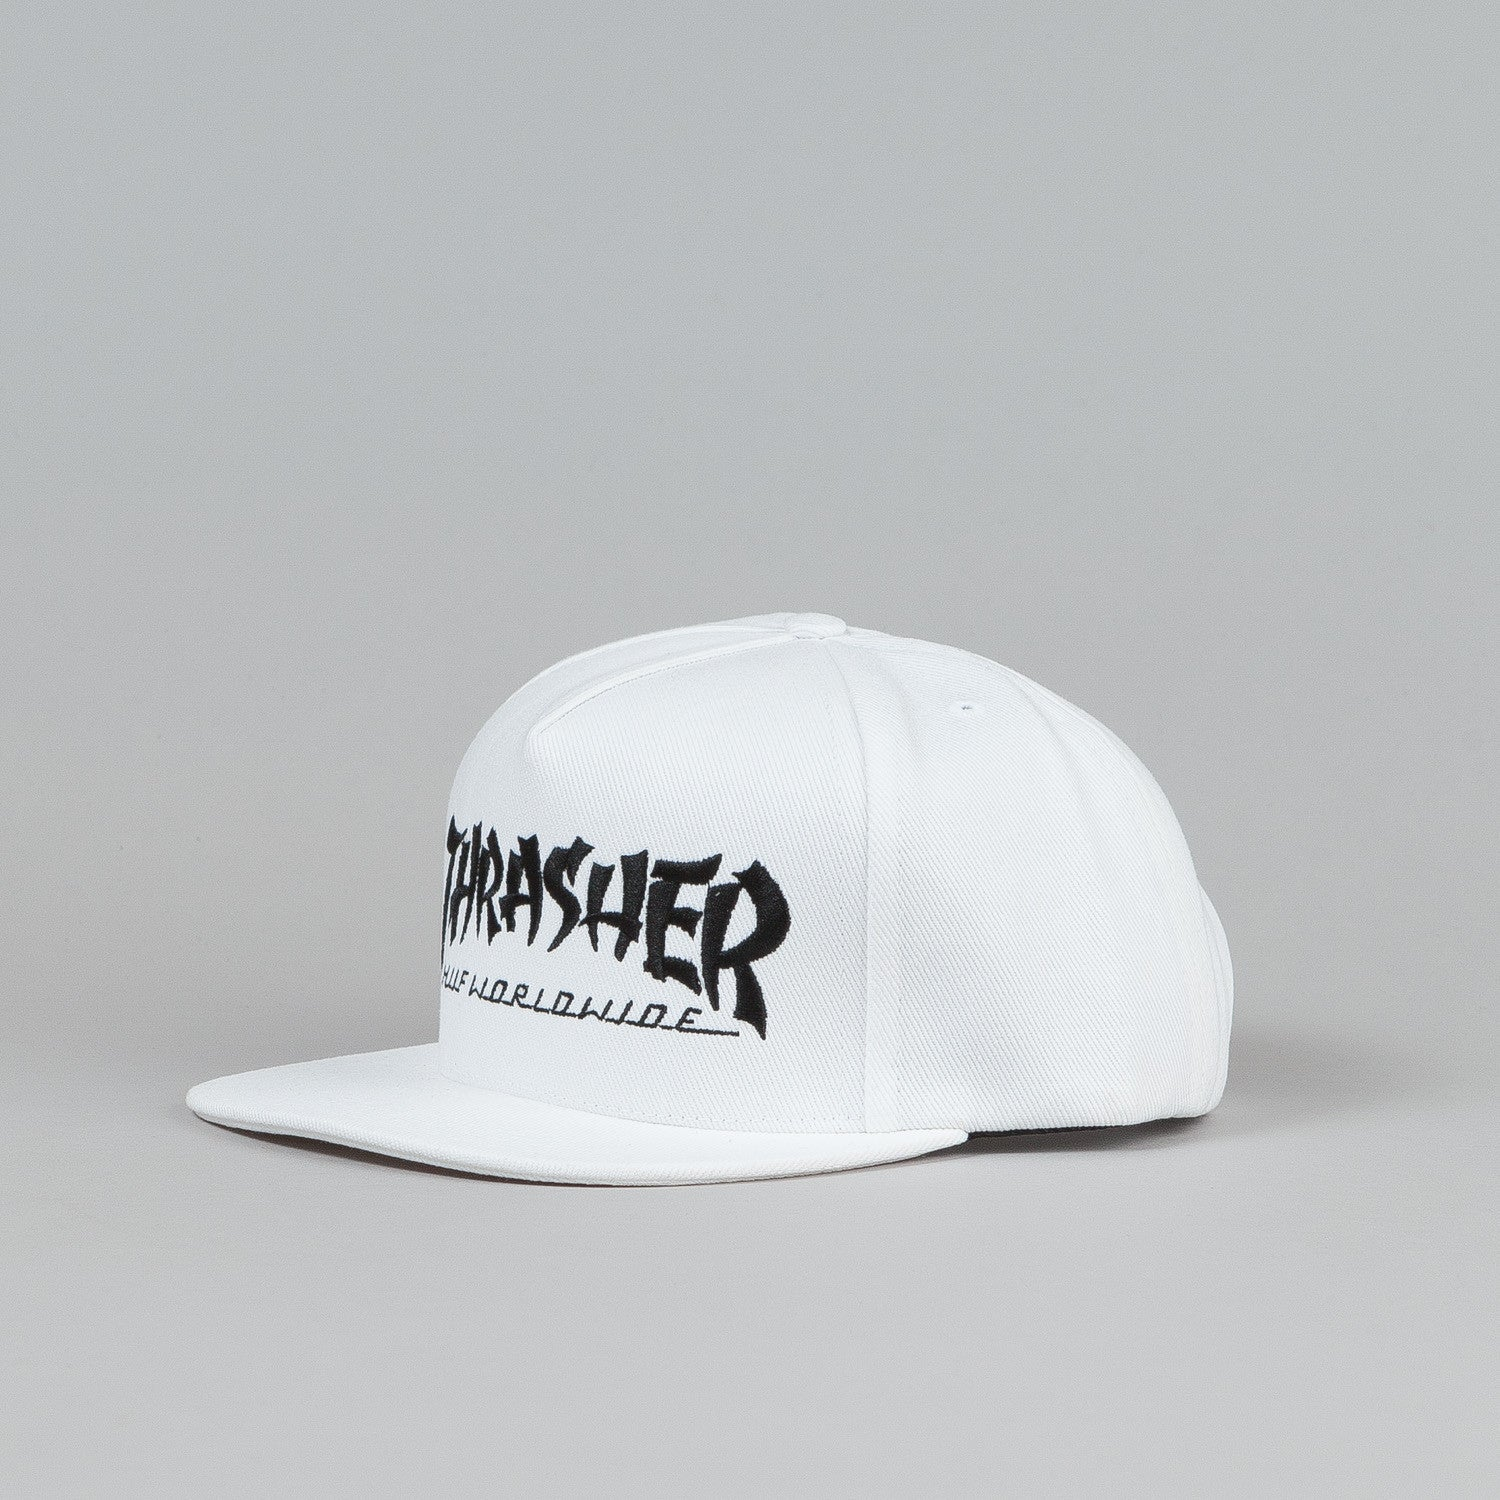 Huf X Thrasher Asia Tour Snapback Cap White Denim